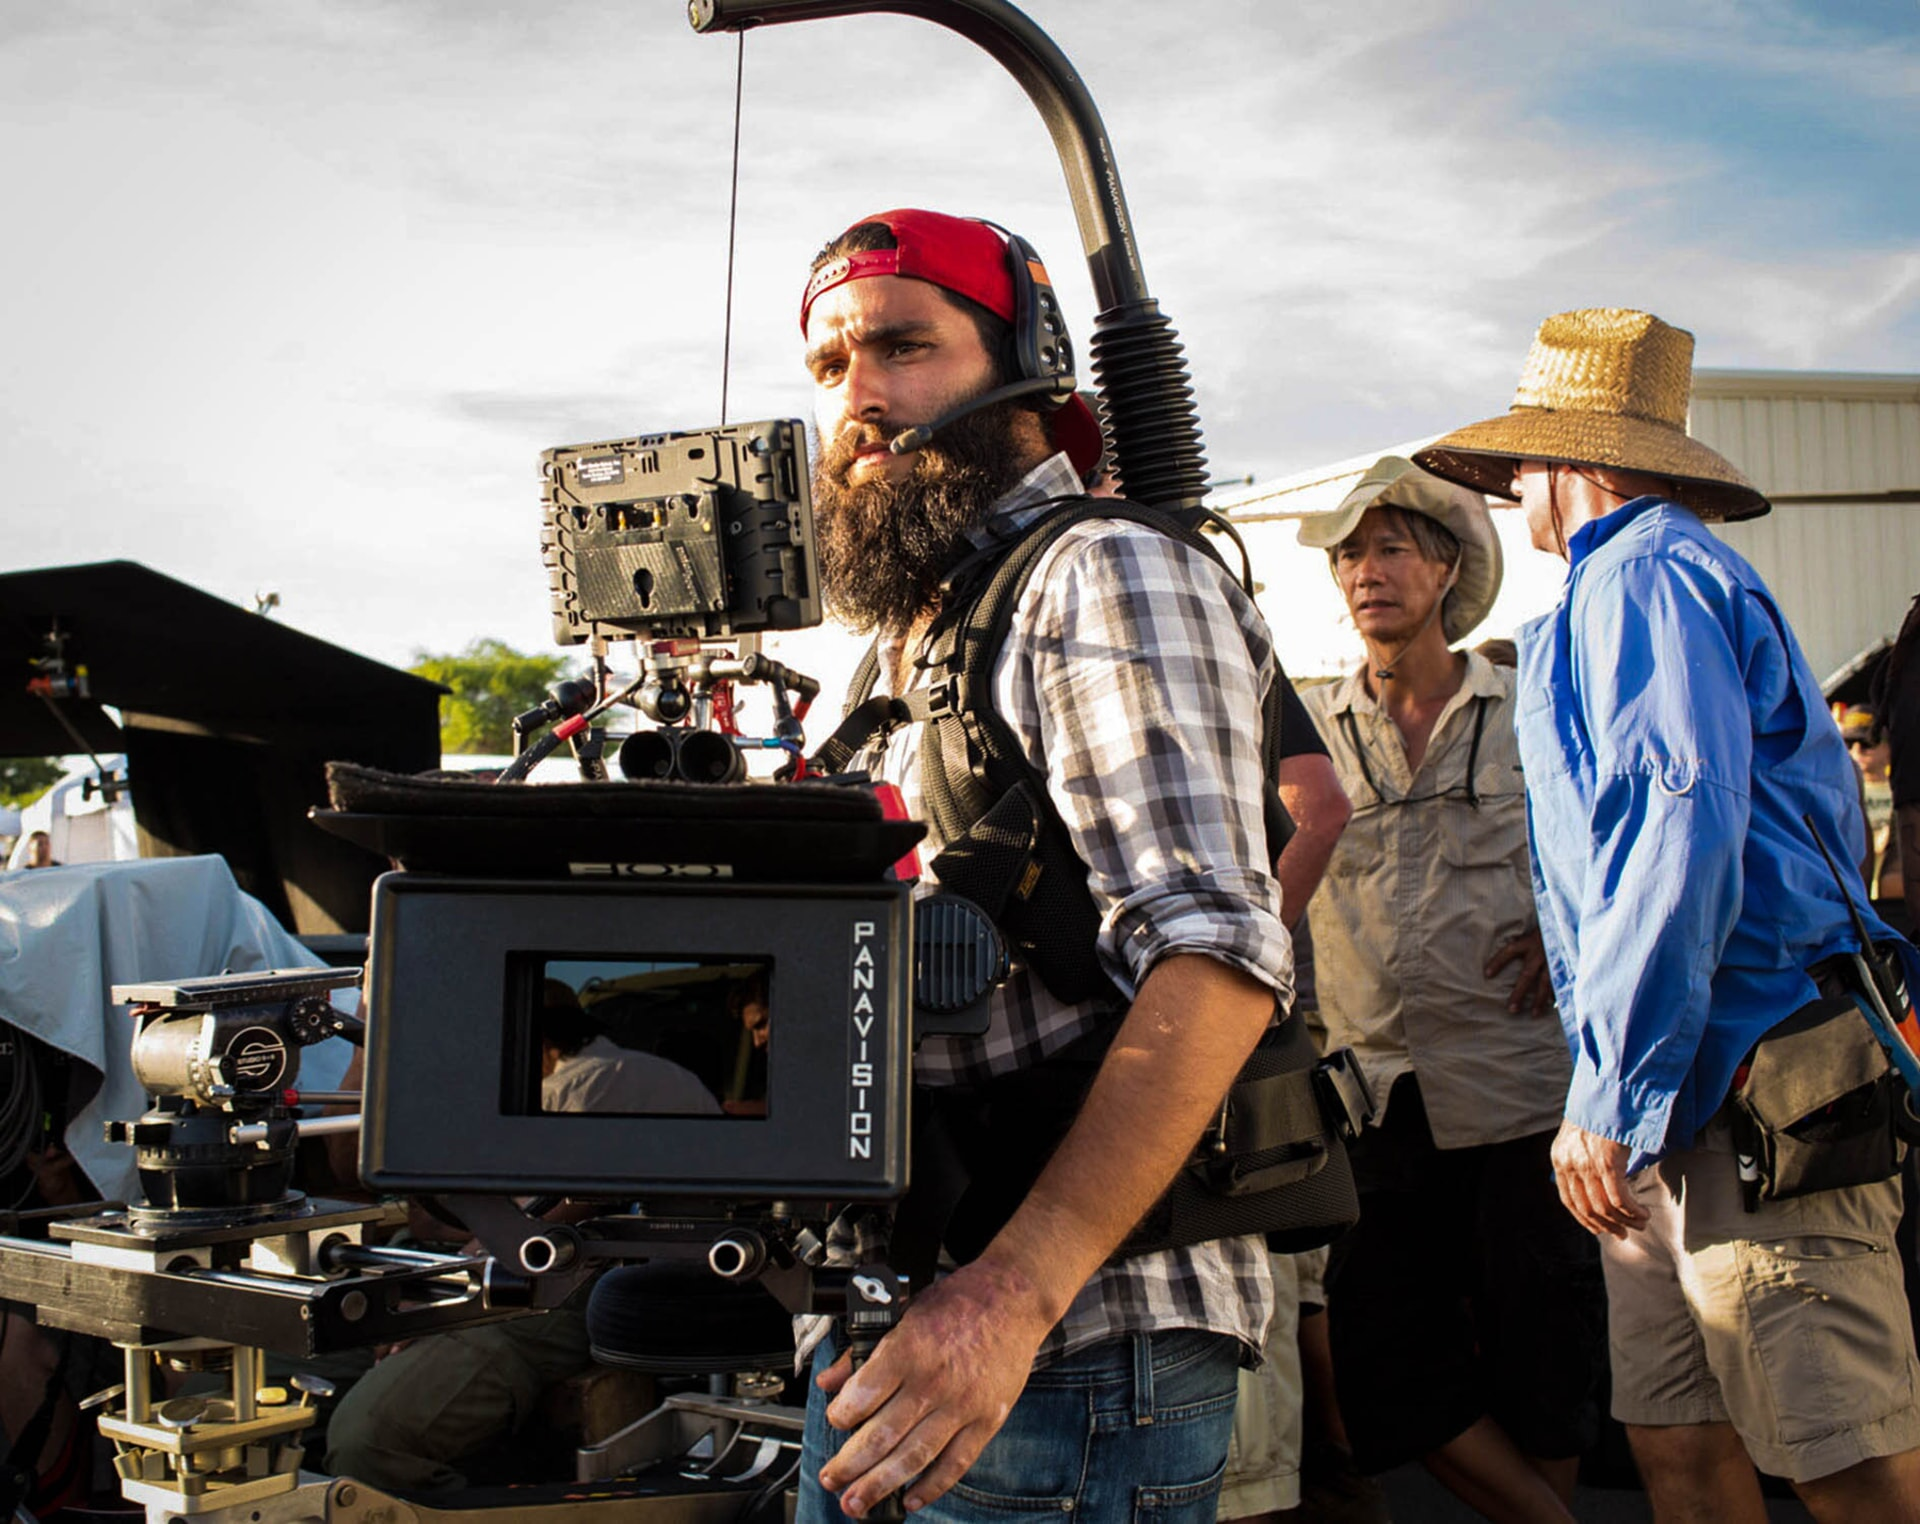 """Director JORDAN VOGT-ROBERTS on the set of Warner Bros. Pictures', Legendary Pictures' and Tencent Pictures' action adventure """"KONG: SKULL ISLAND,"""" a Warner Bros. Pictures release."""